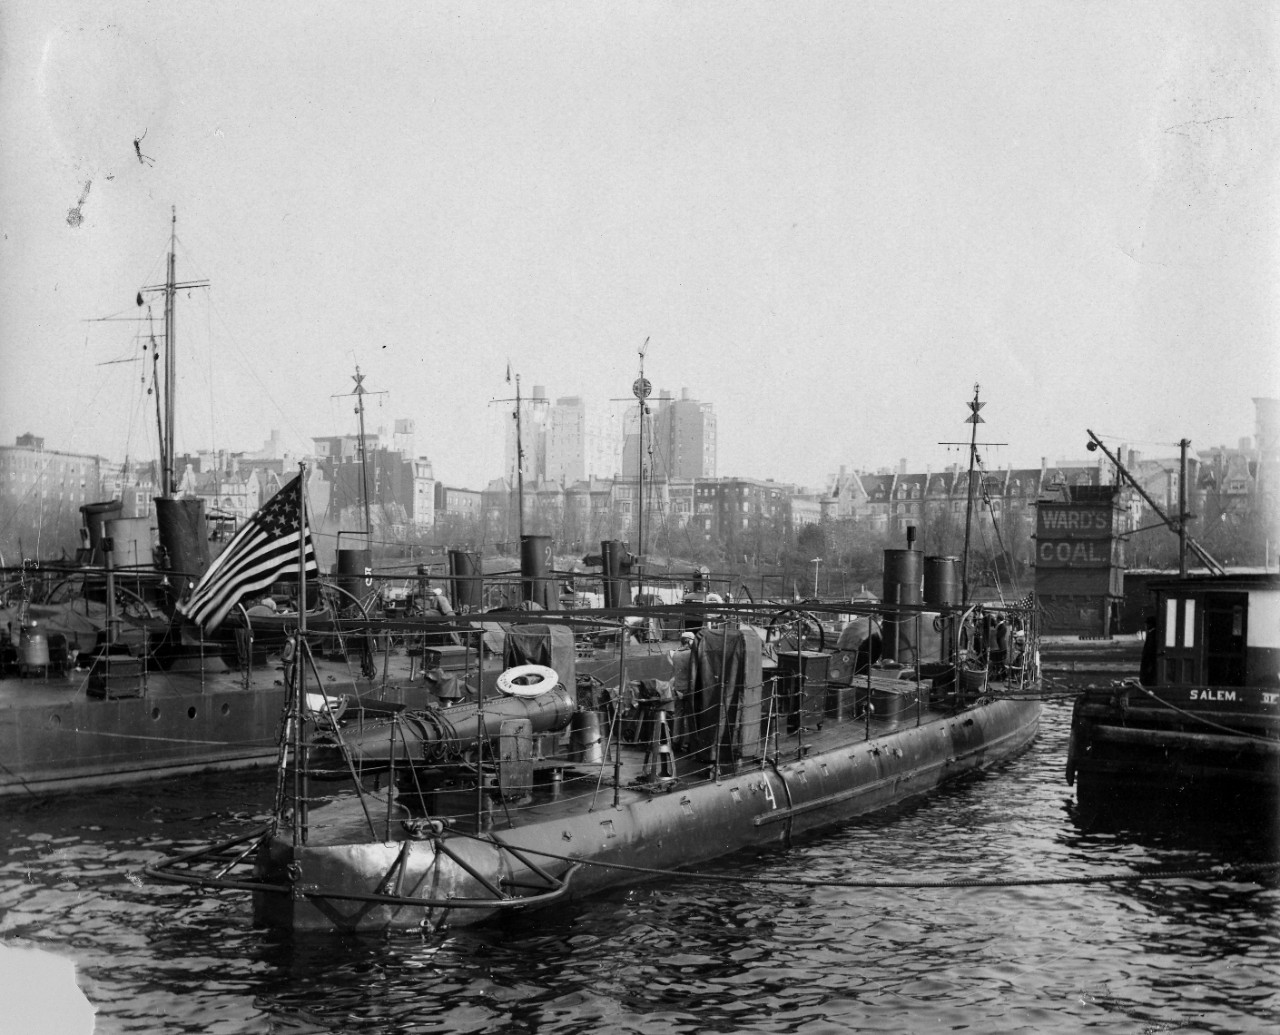 Submarine detection helped U.S. track enemy during WWI